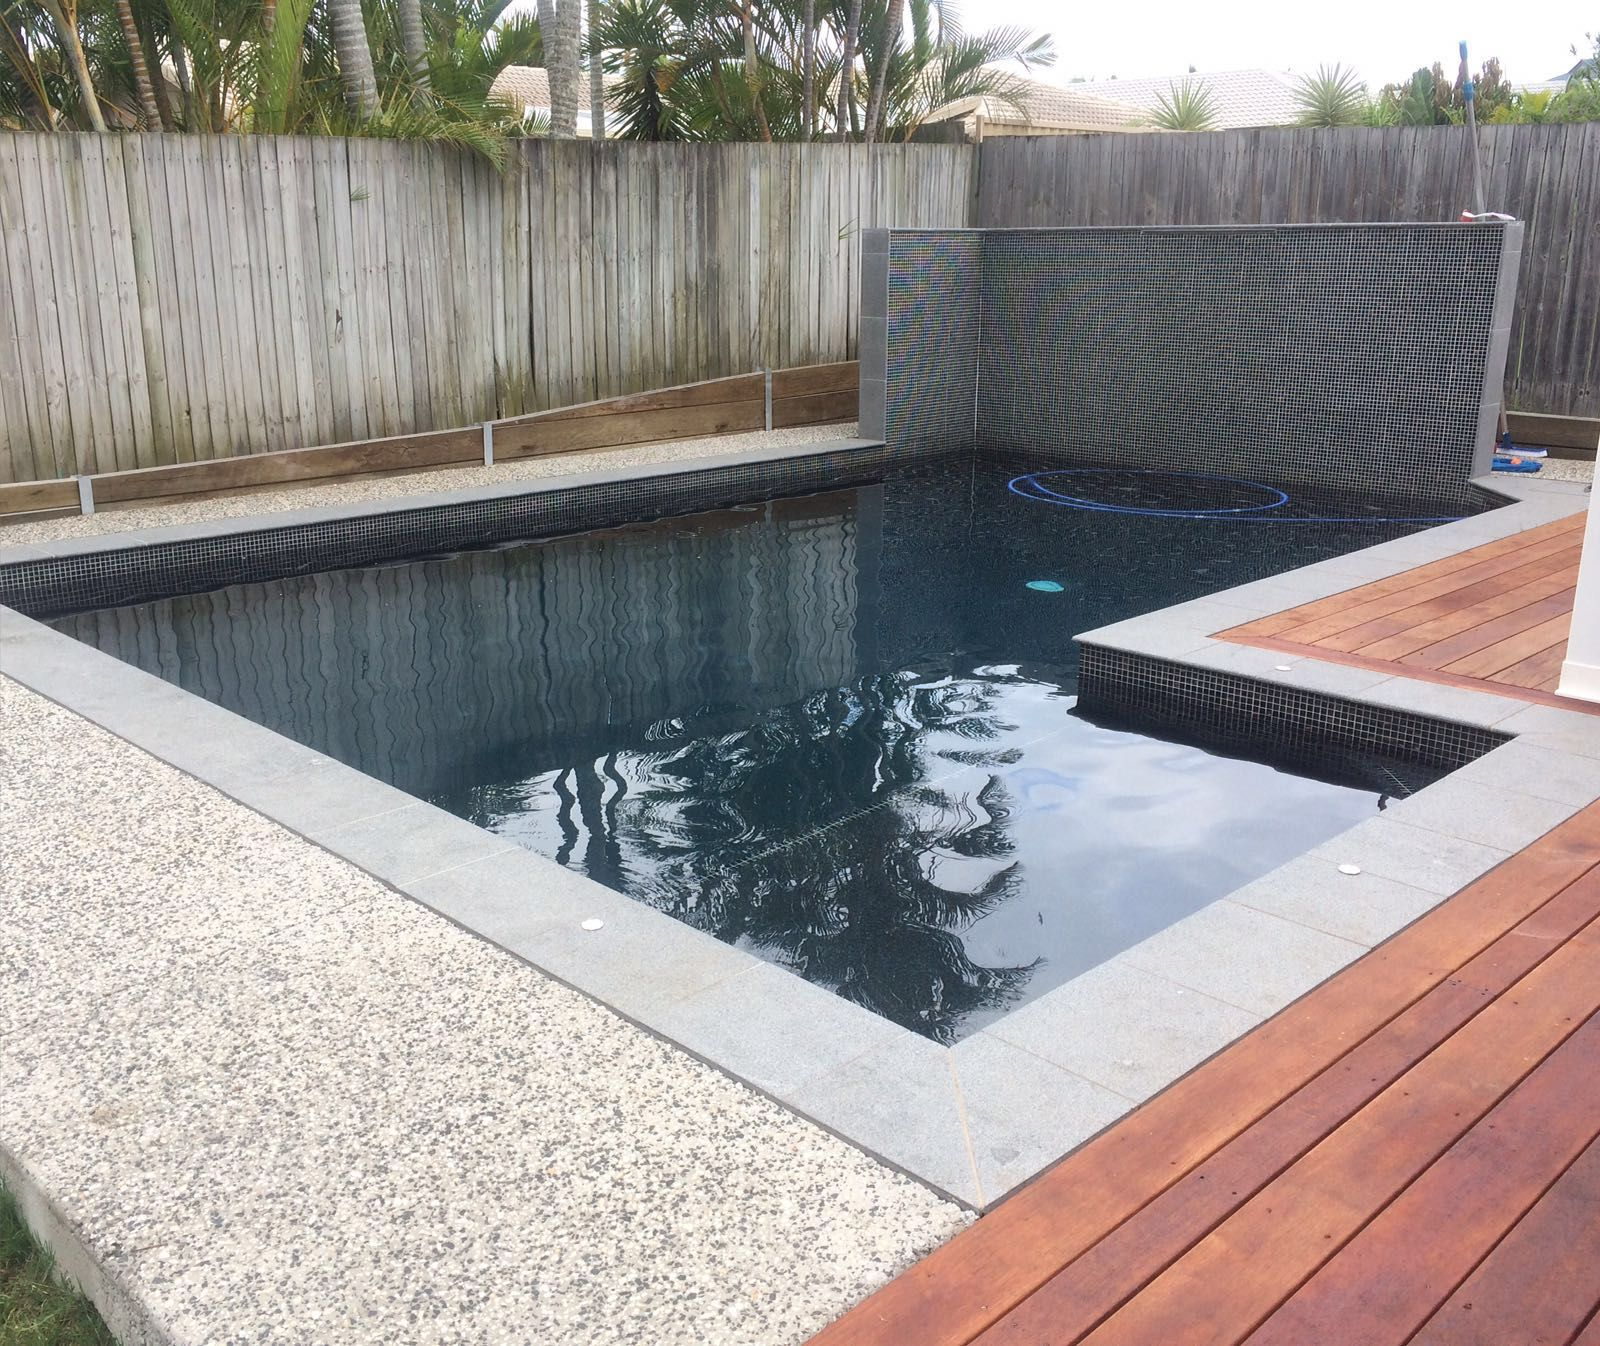 Light Grey Granite Pool Coppings Brisbane Project Shenzhen Leeste Industry Co Ltd Www Chinagrantiemart Com Concrete Patio Pool Landscaping Pool Patio